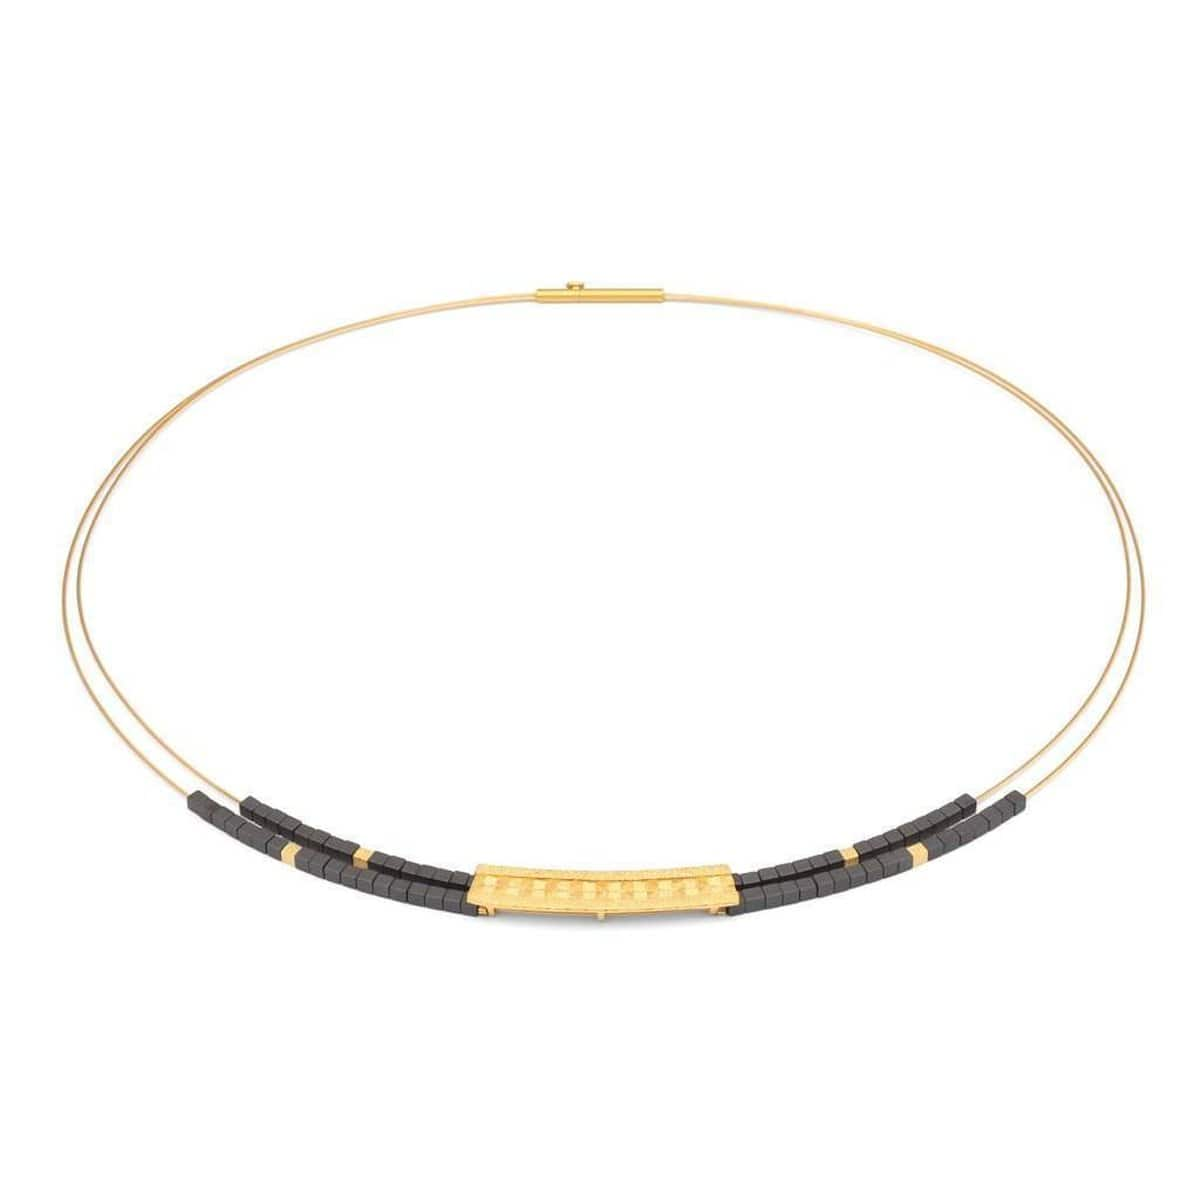 Orelia Hematine Necklace - 85014276